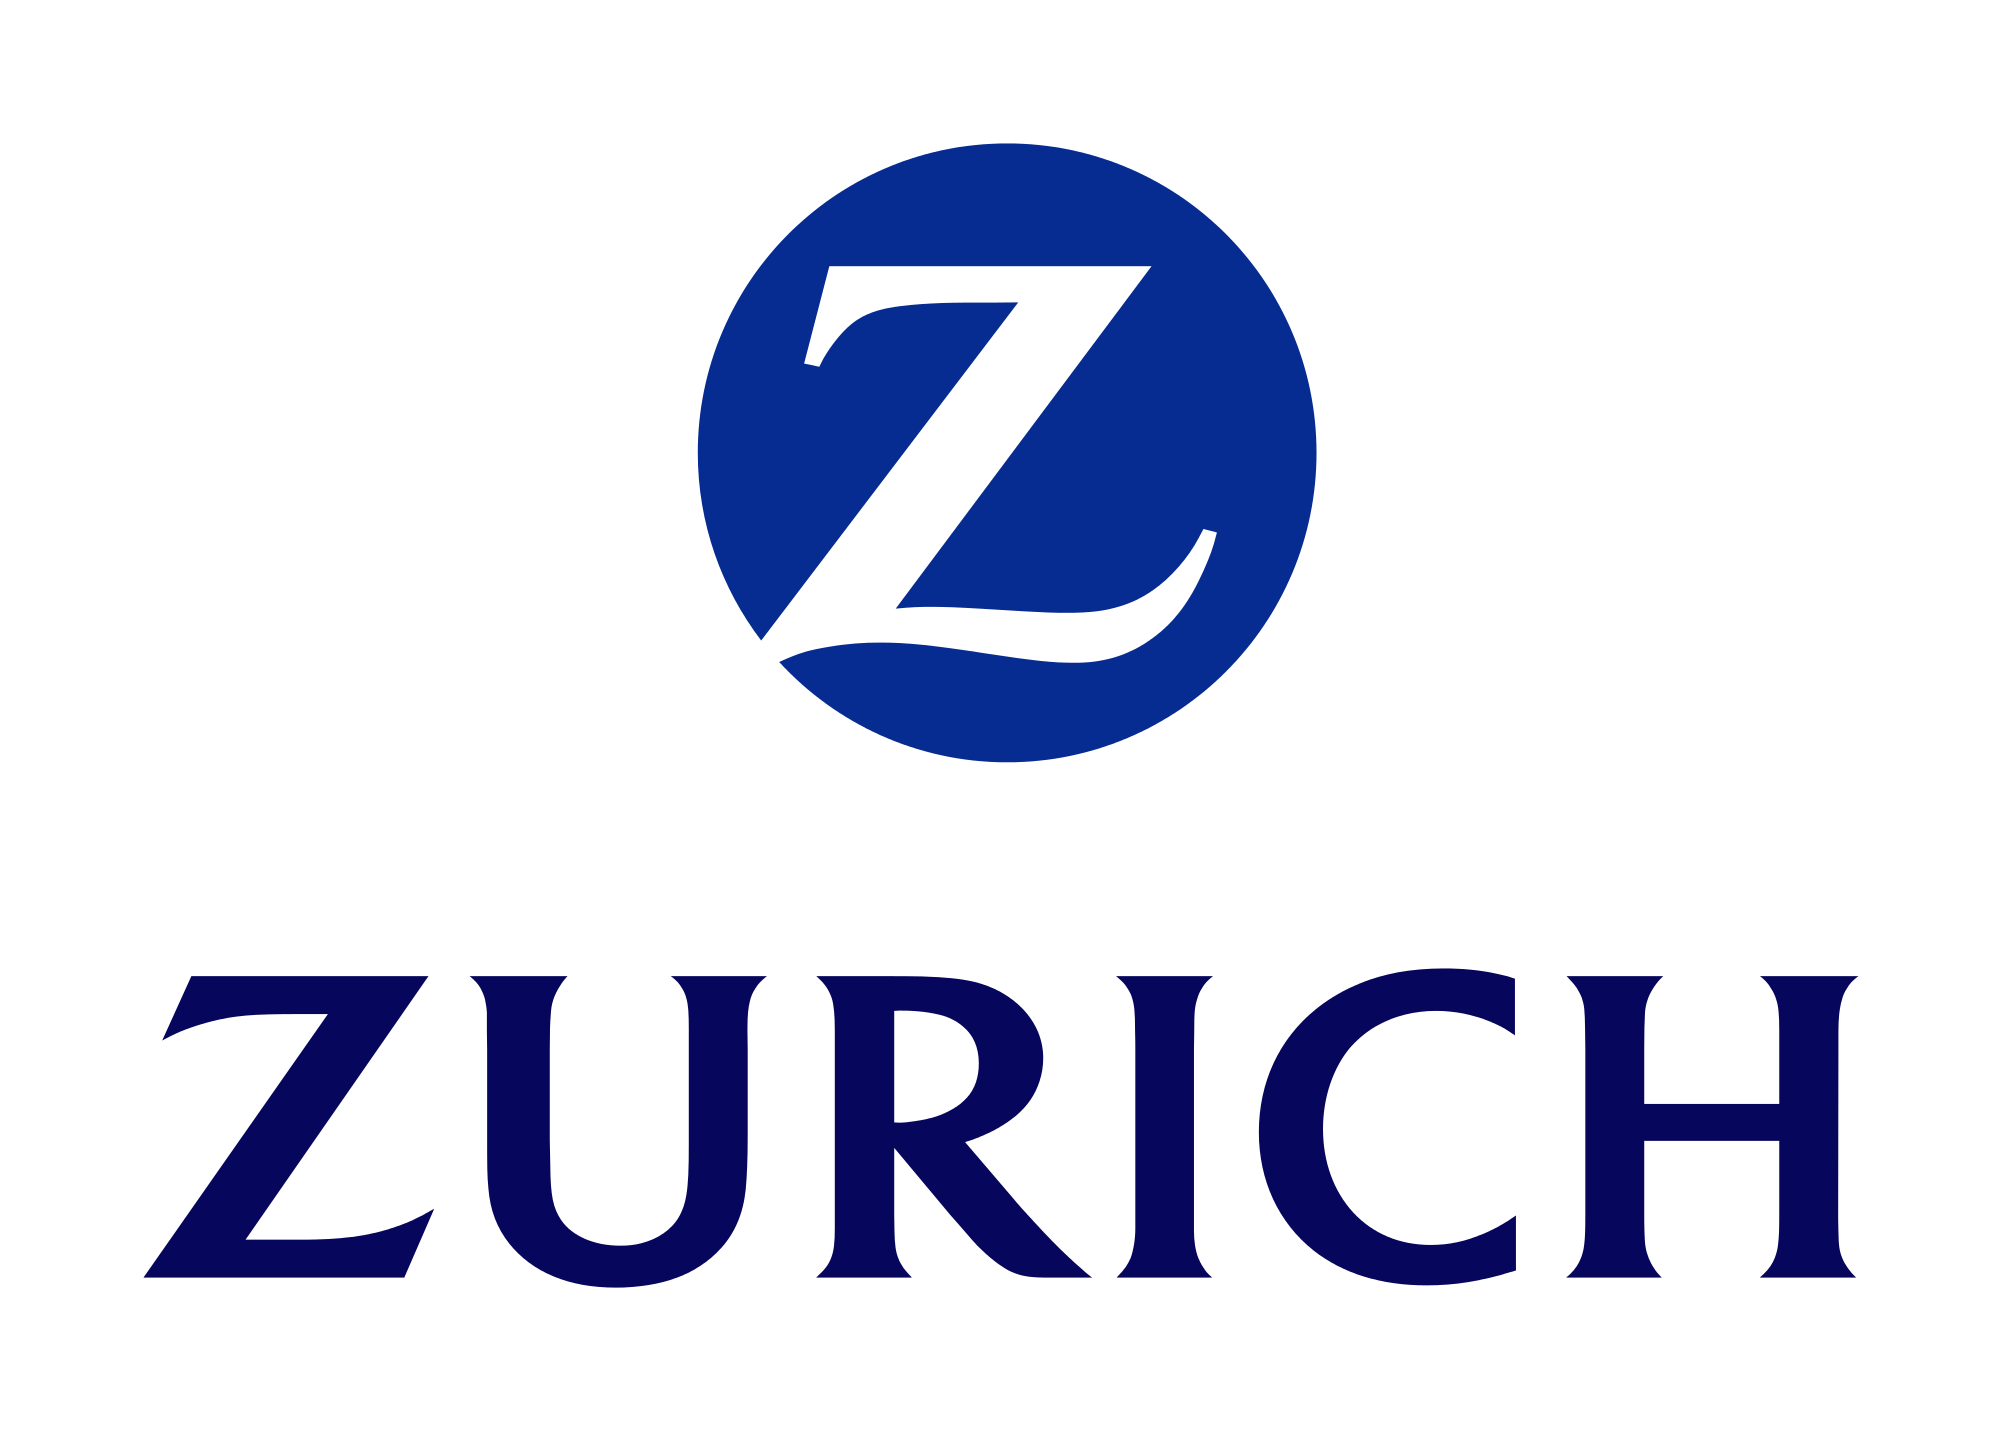 The Z Zurich Foundation